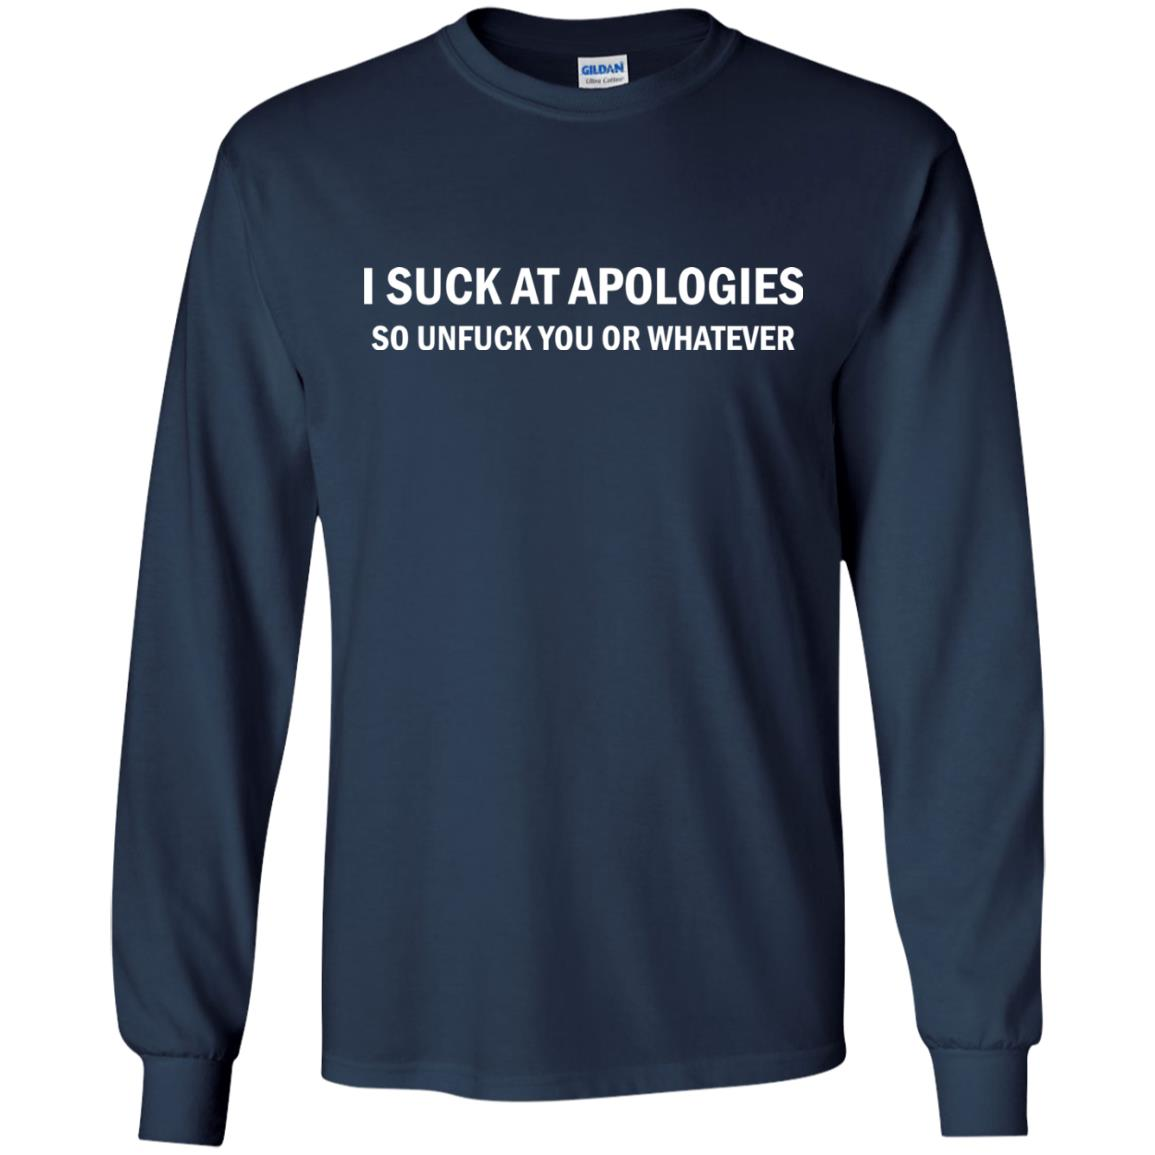 image 1832 - I suck at apologies so unfuck you or whatever shirt